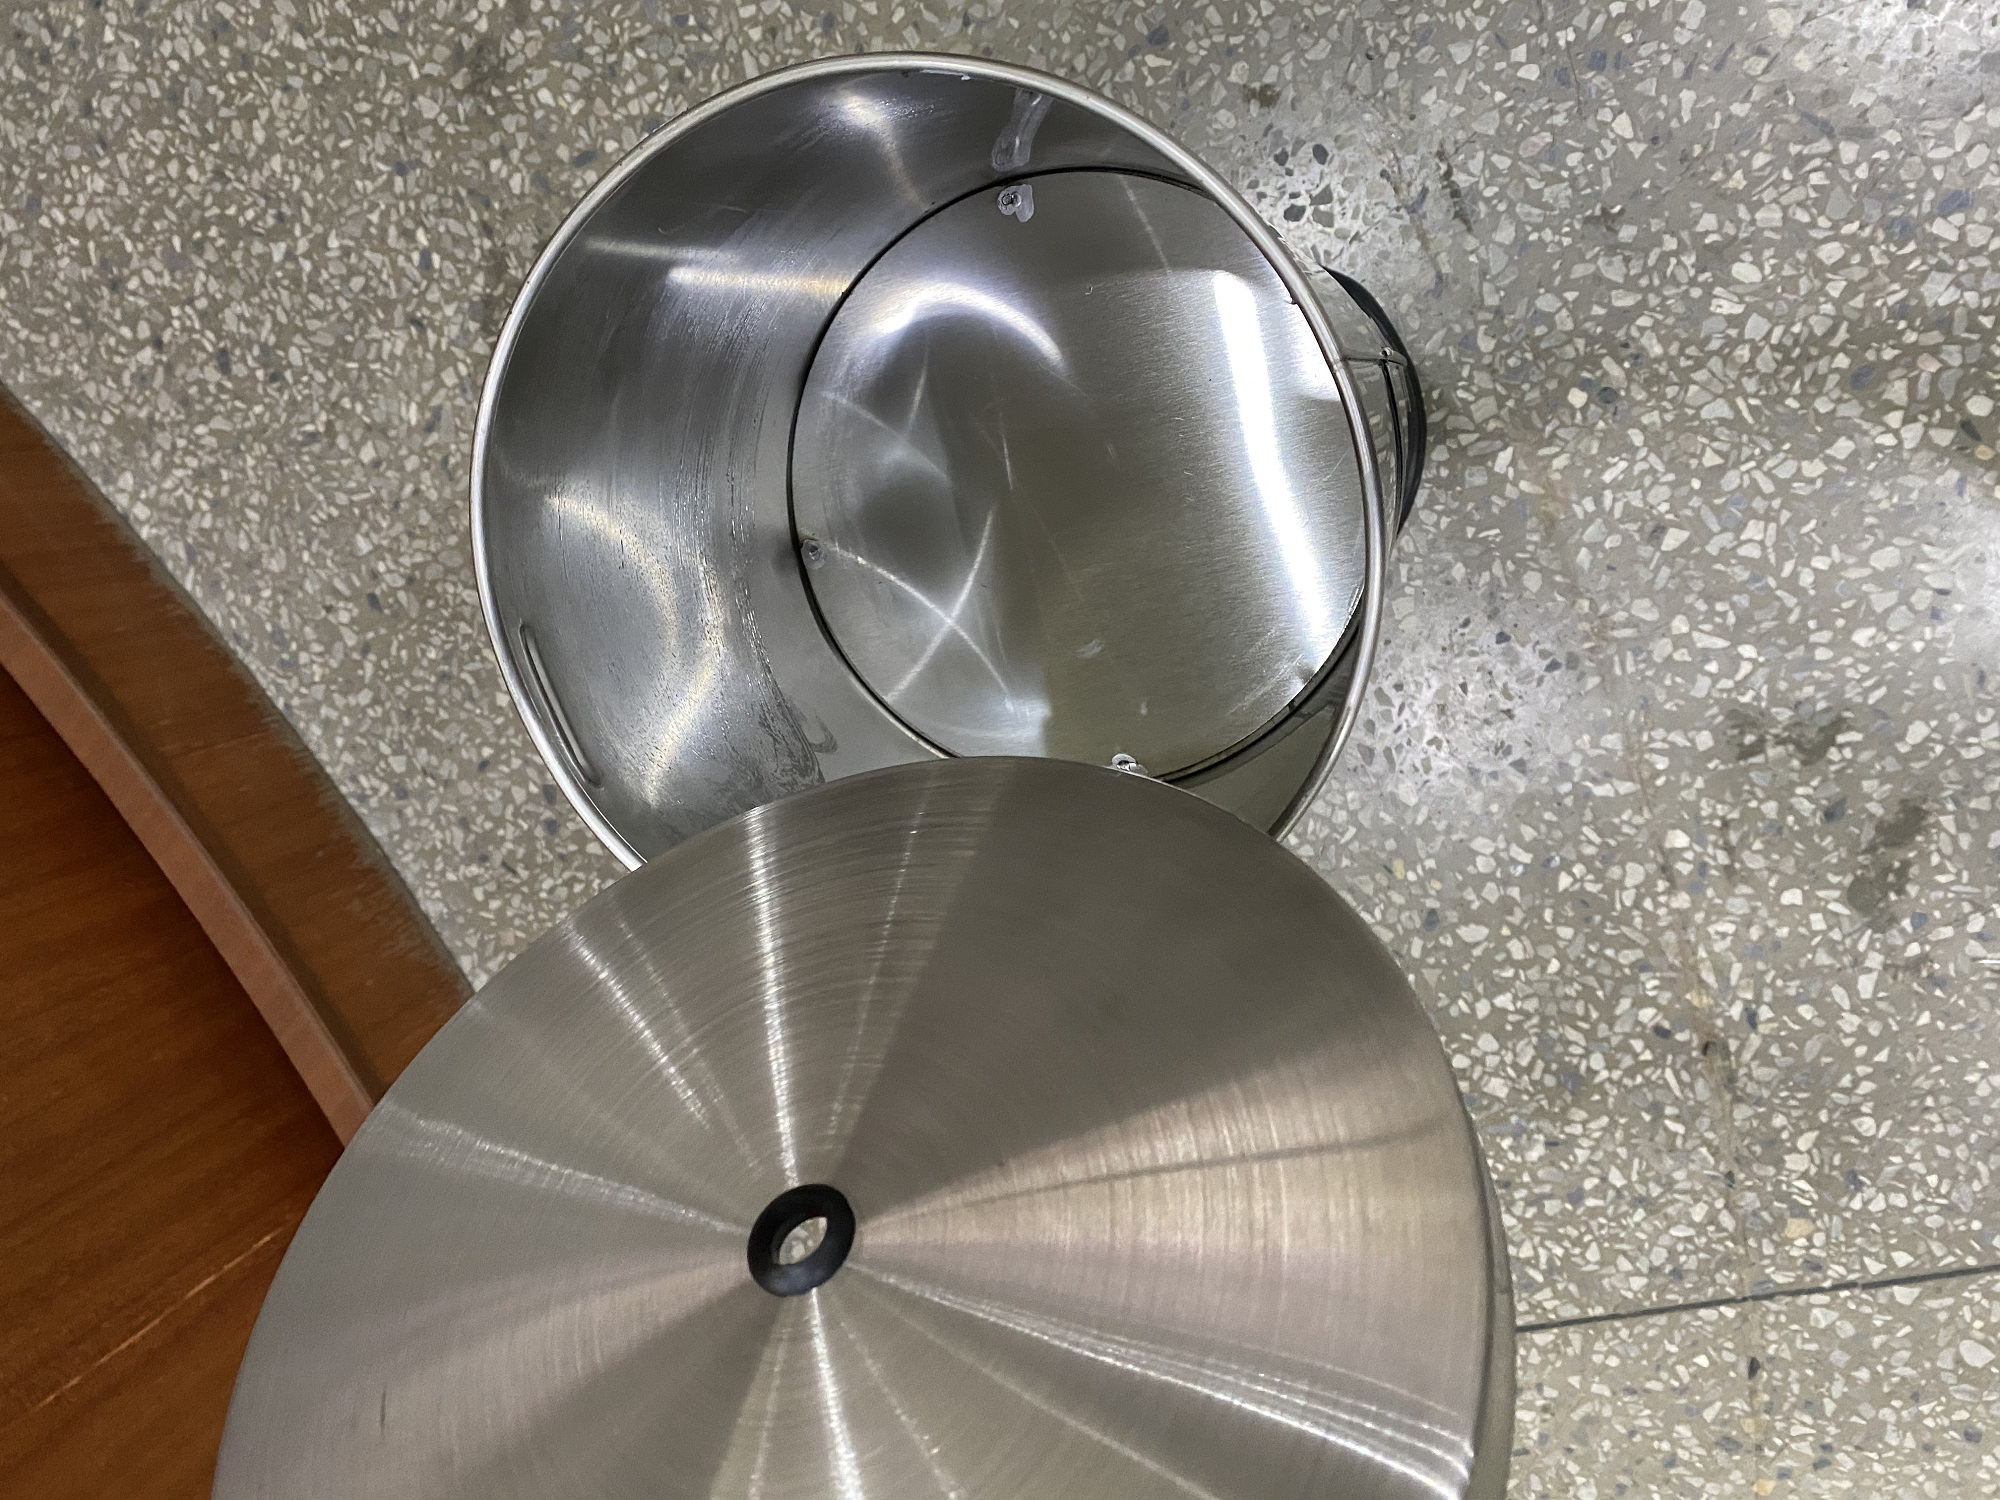 Stainless steel Gym Wipes dispenser